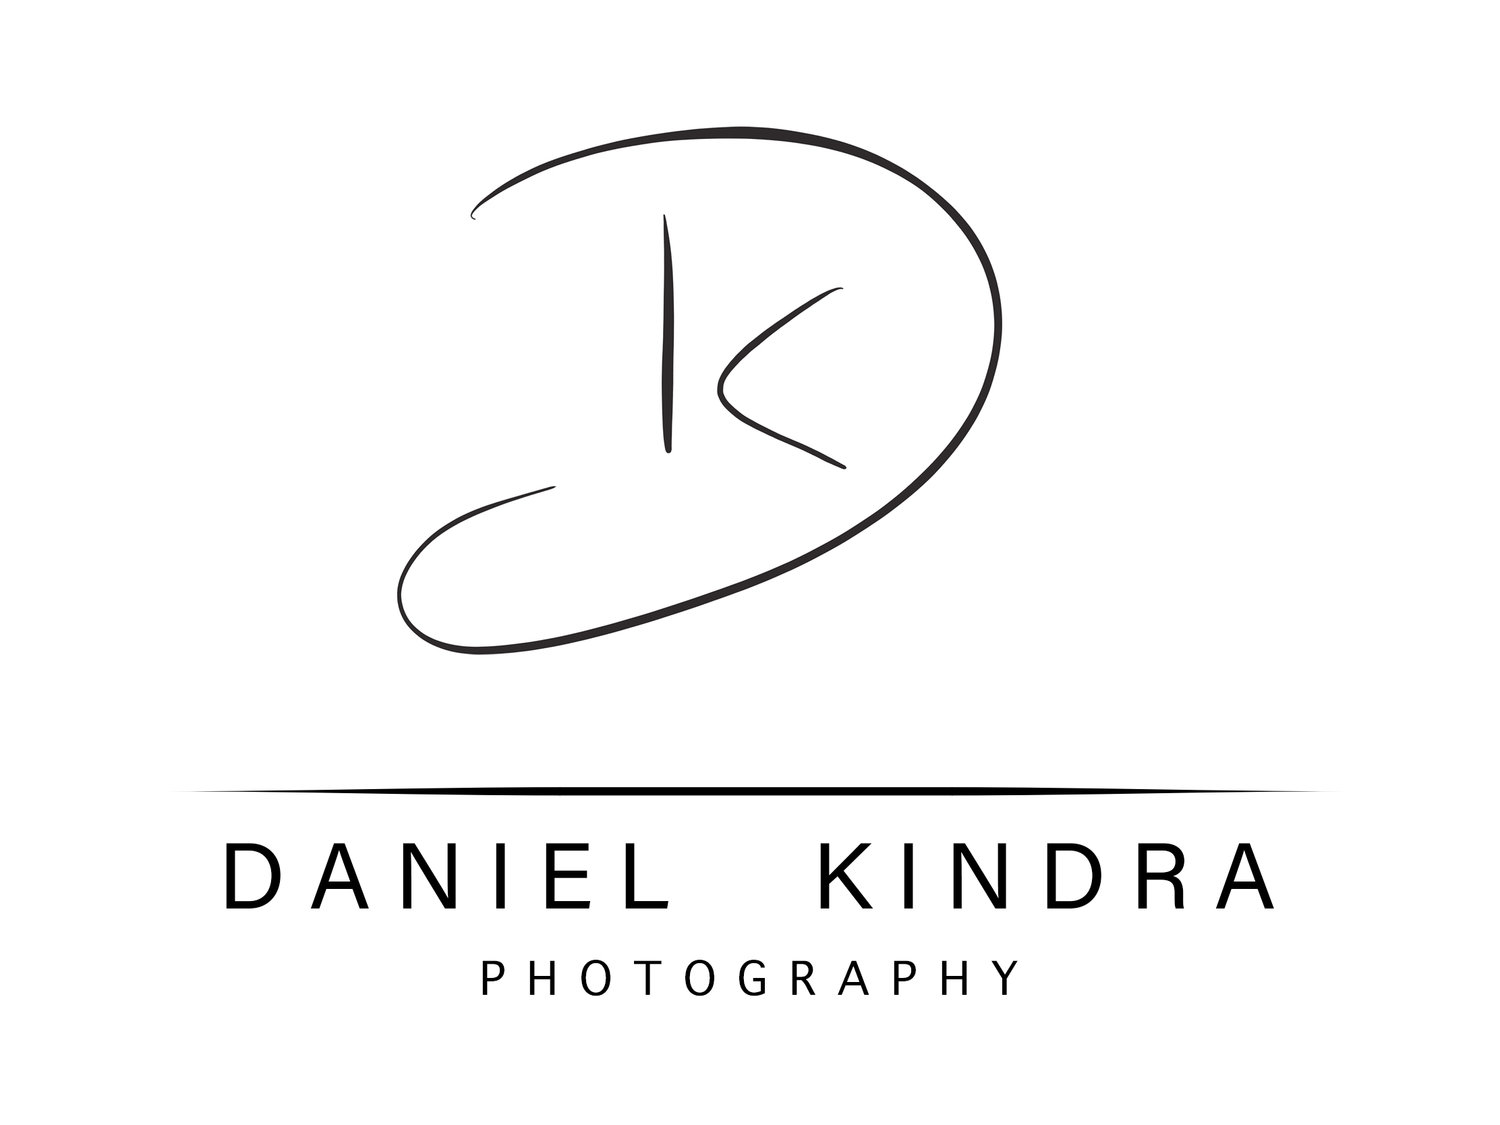 Daniel Kindra Photography